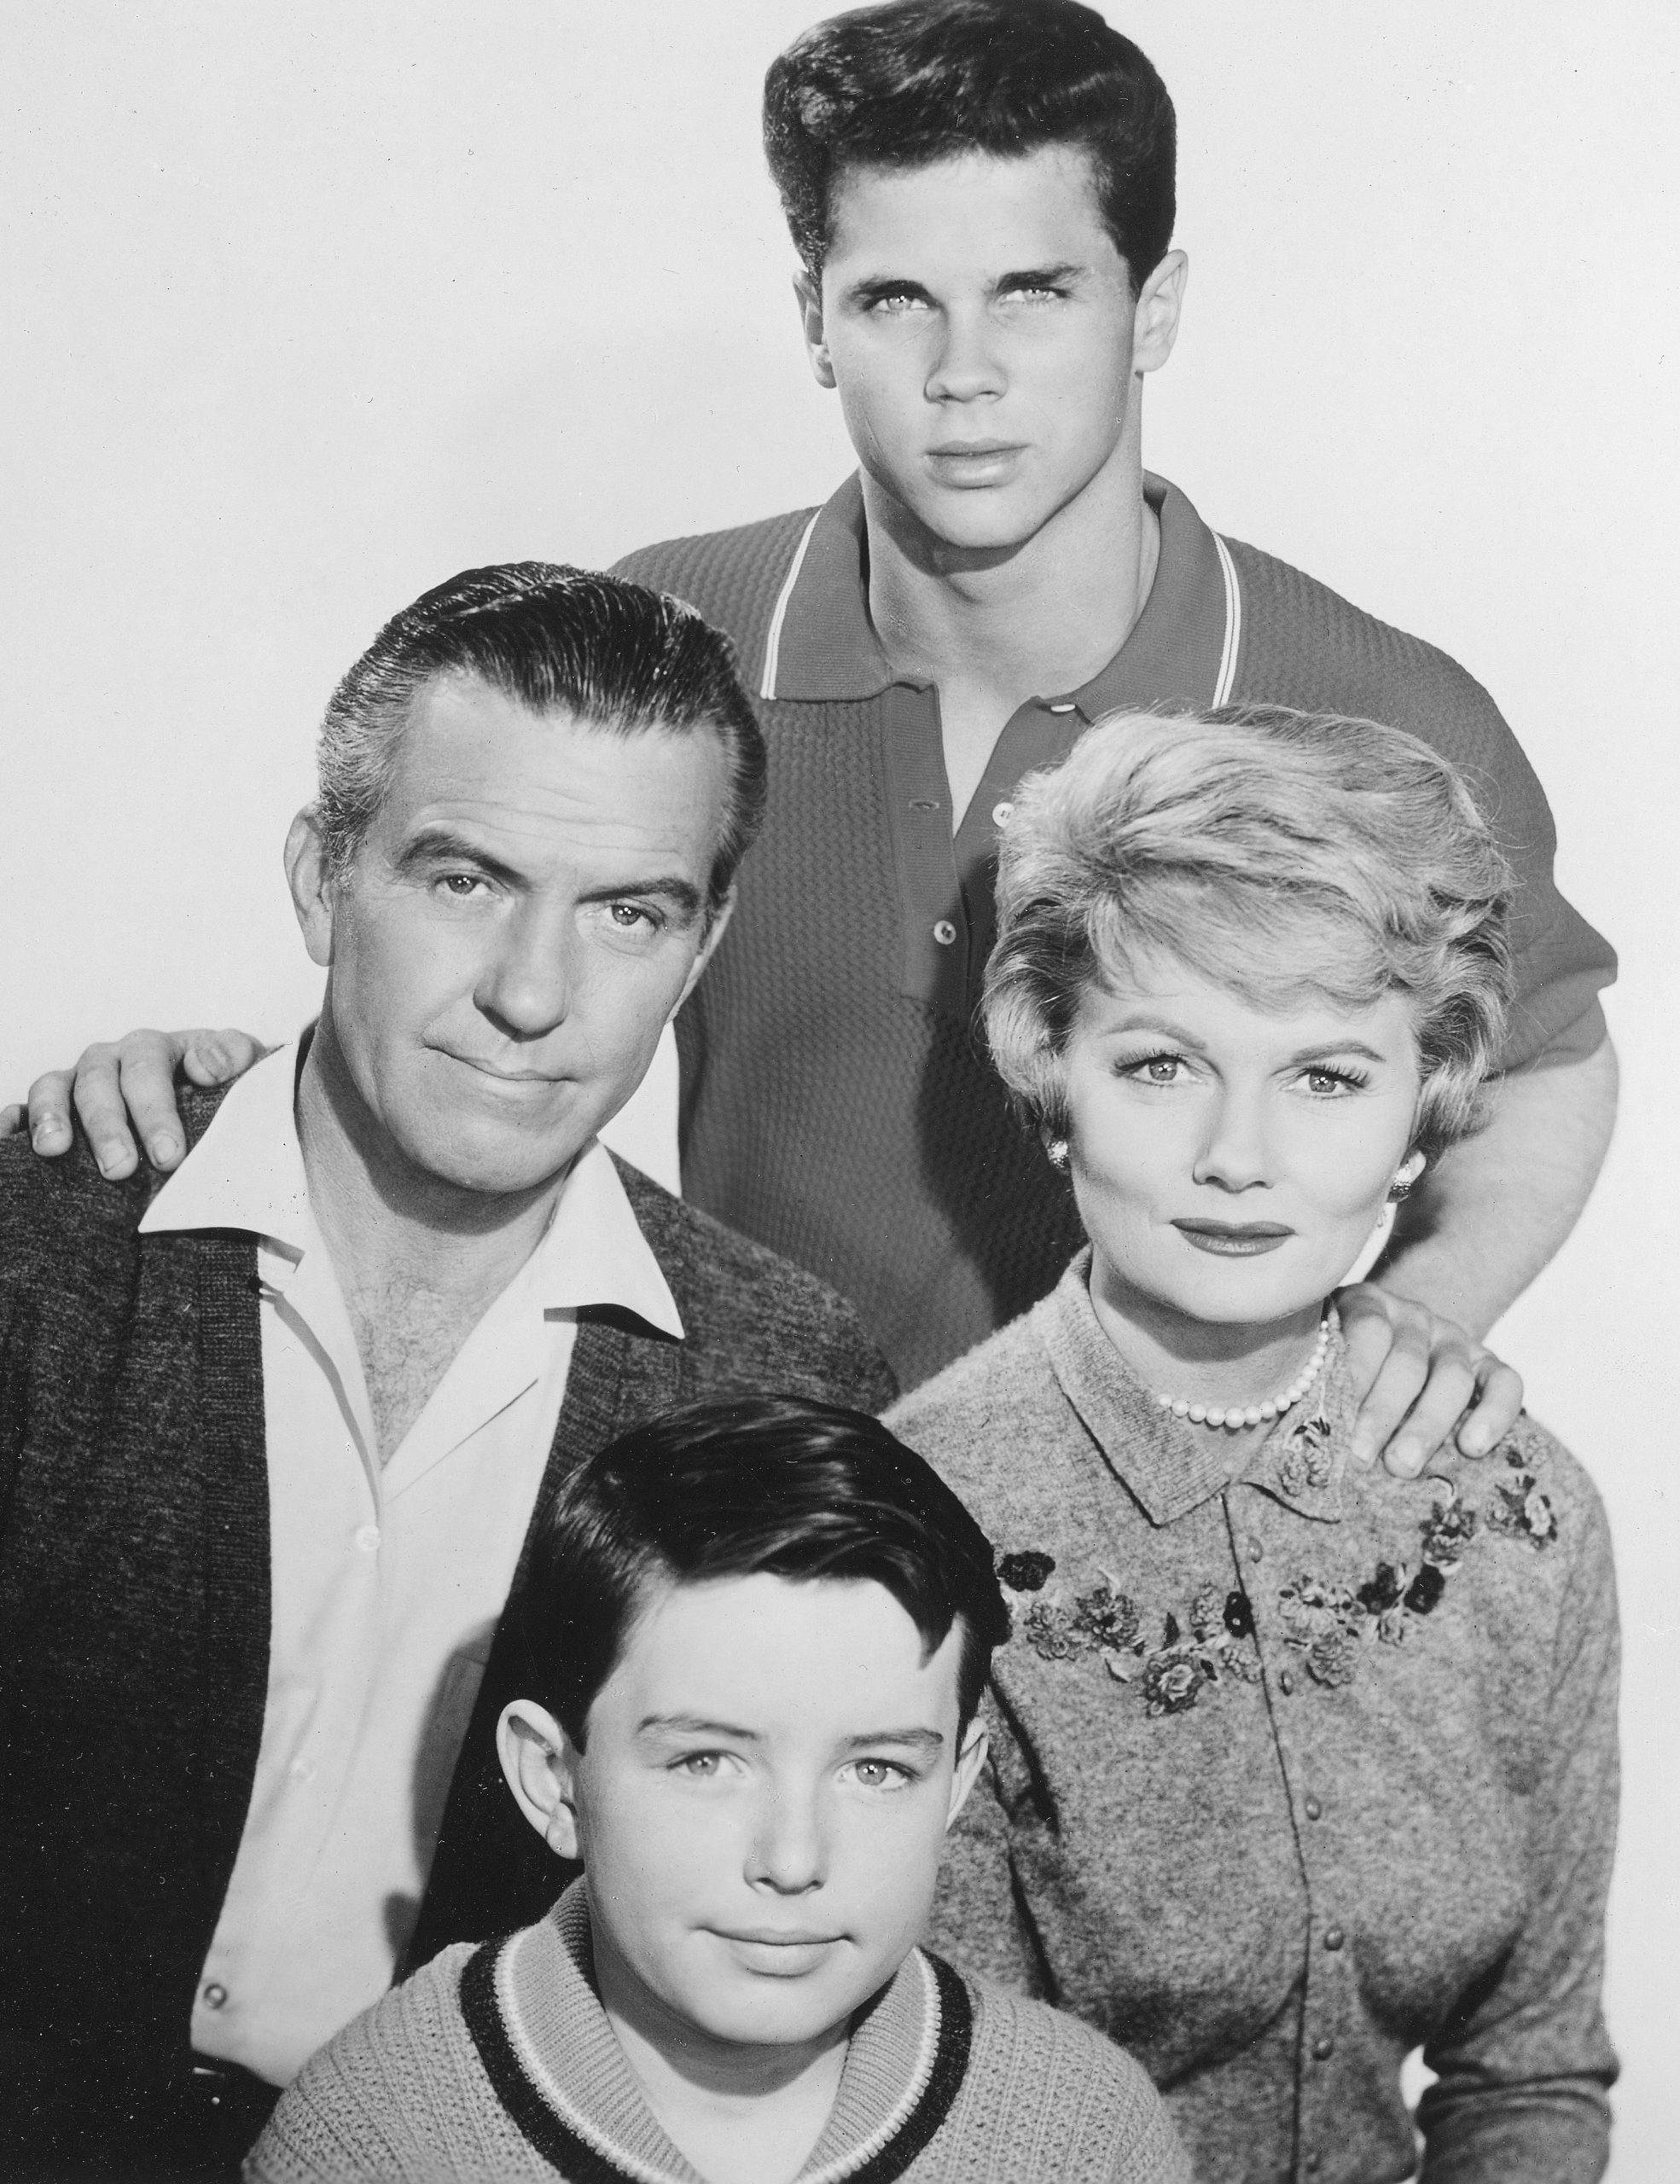 Jerry Mathers as Beaver Cleaver, Hugh Beaumont as Ward Cleaver, Barbara Billingsley as June Cleaver and Tony Dow as Wally Cleaver in a promotional photo for 'Leave It to Beaver'